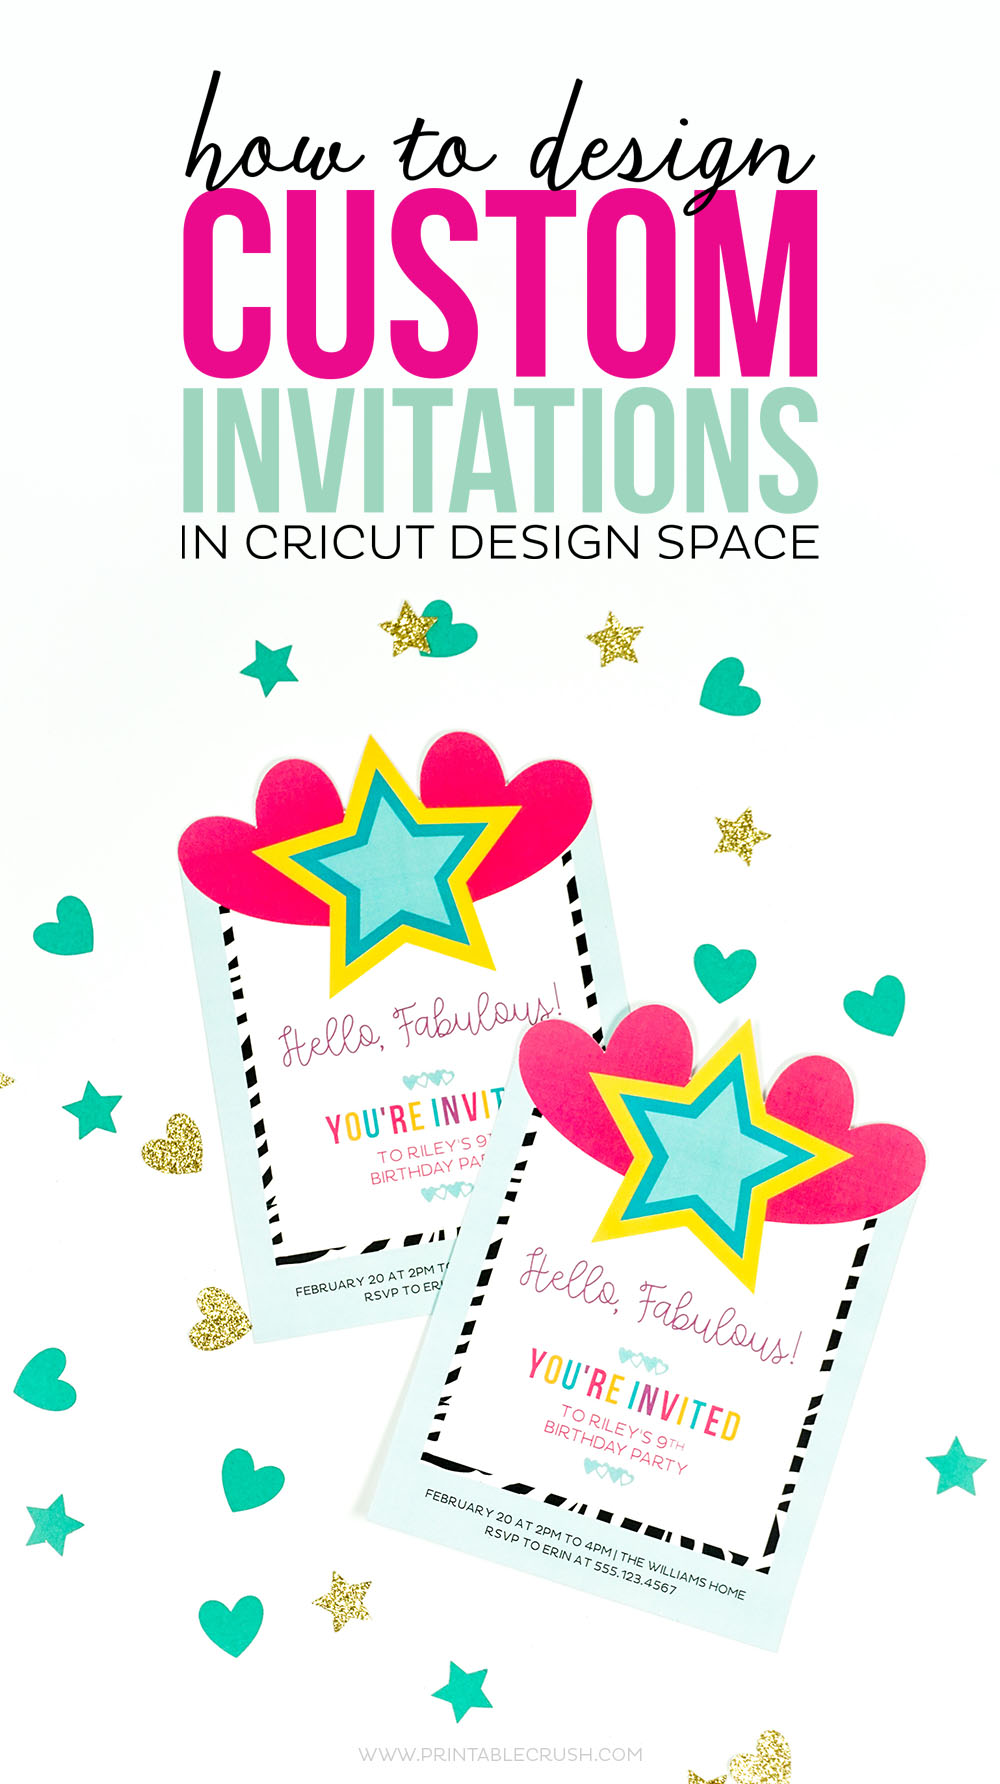 Invitation Design - Design Beautiful Custom Invitations